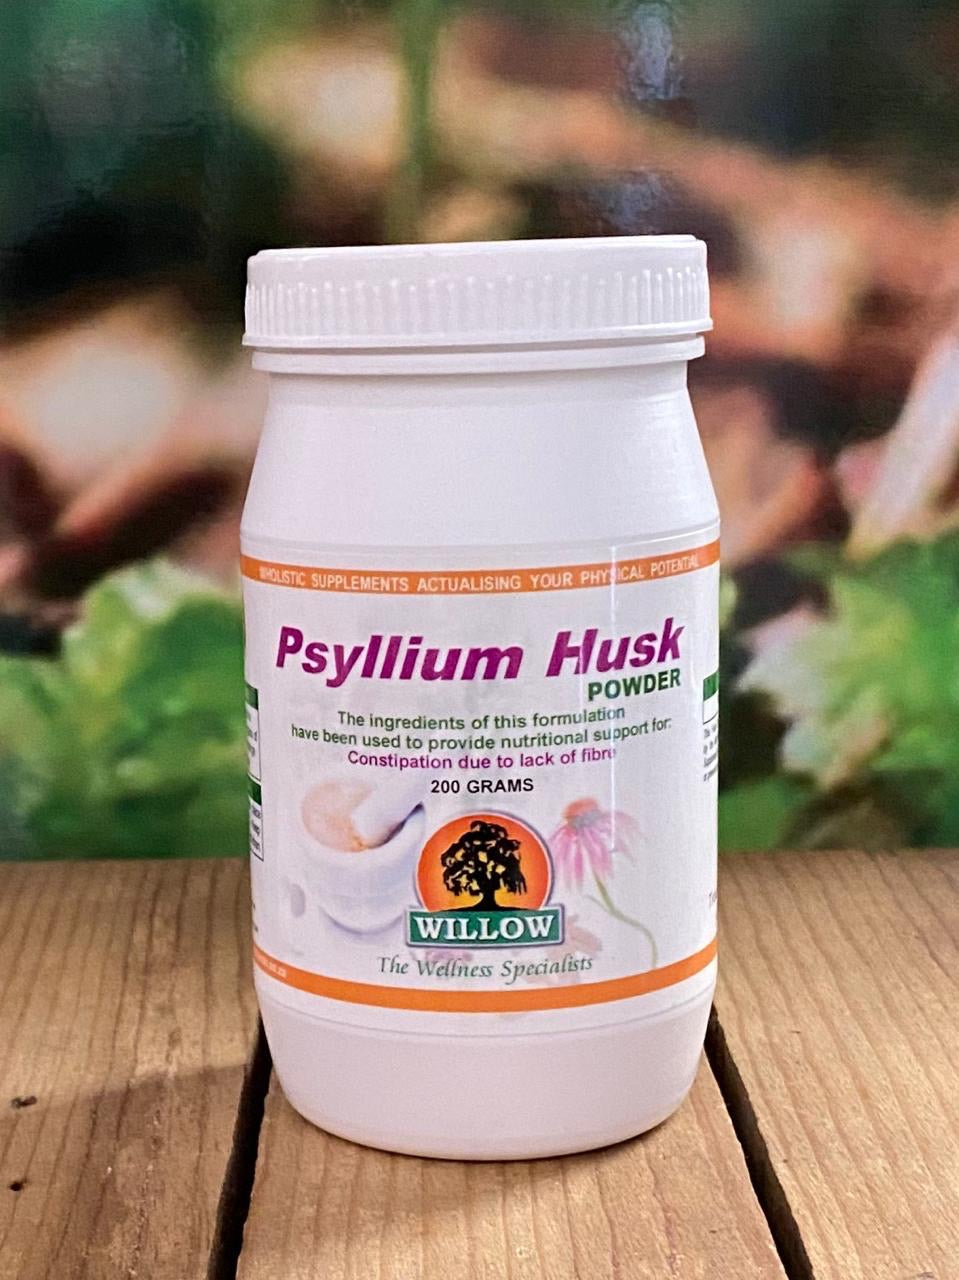 Willow Psyllium Husk Powder 200g